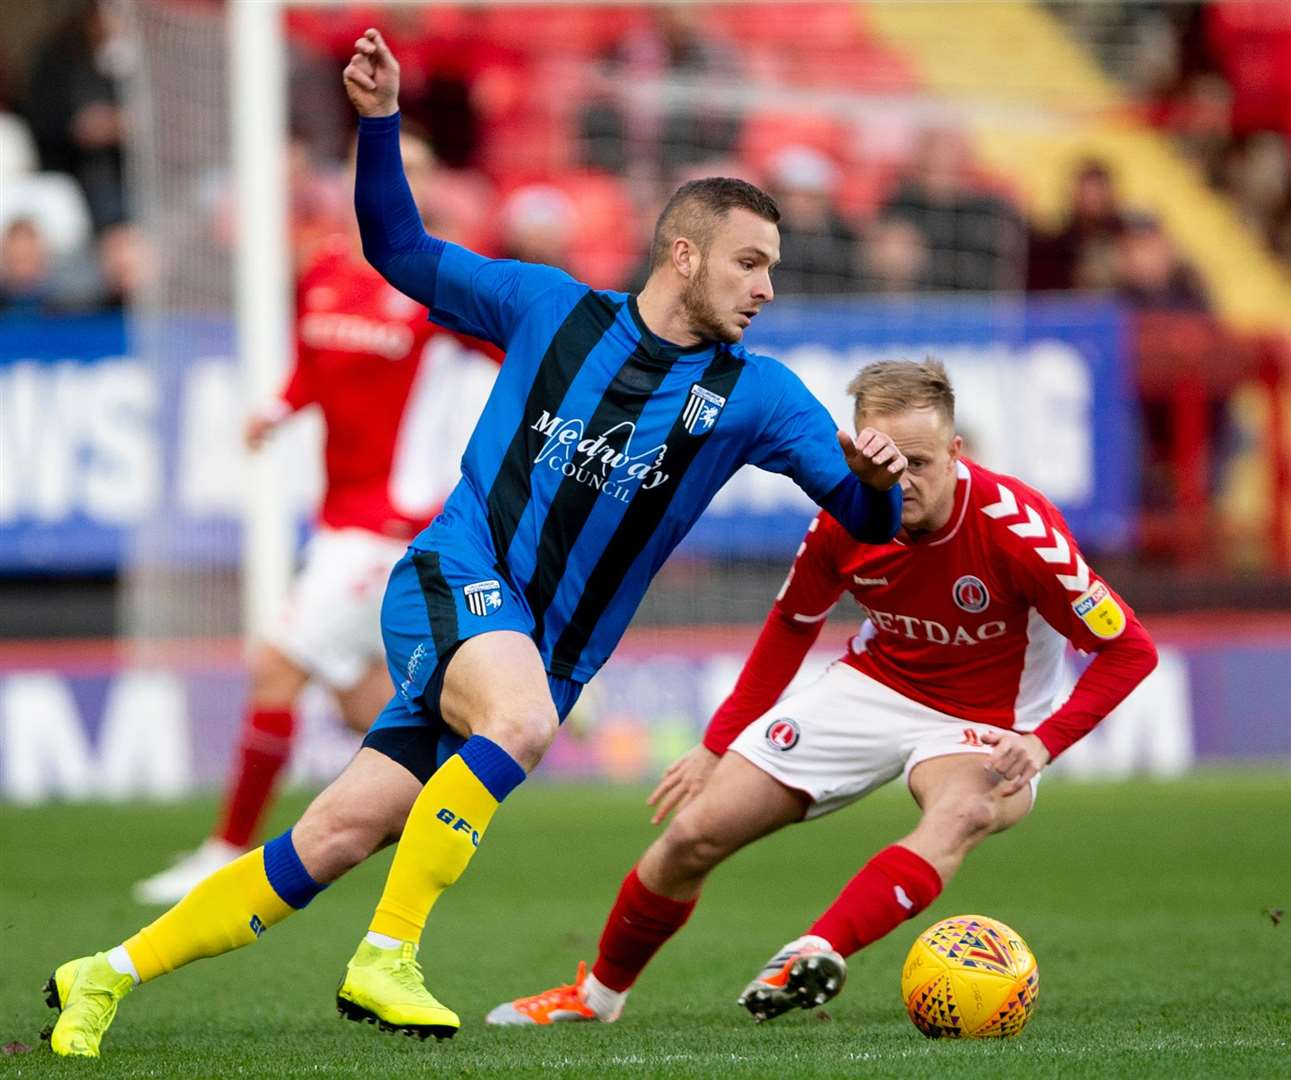 Dean Parrett cuts inside of Charlton's Ben Reeves Picture: Ady Kerry